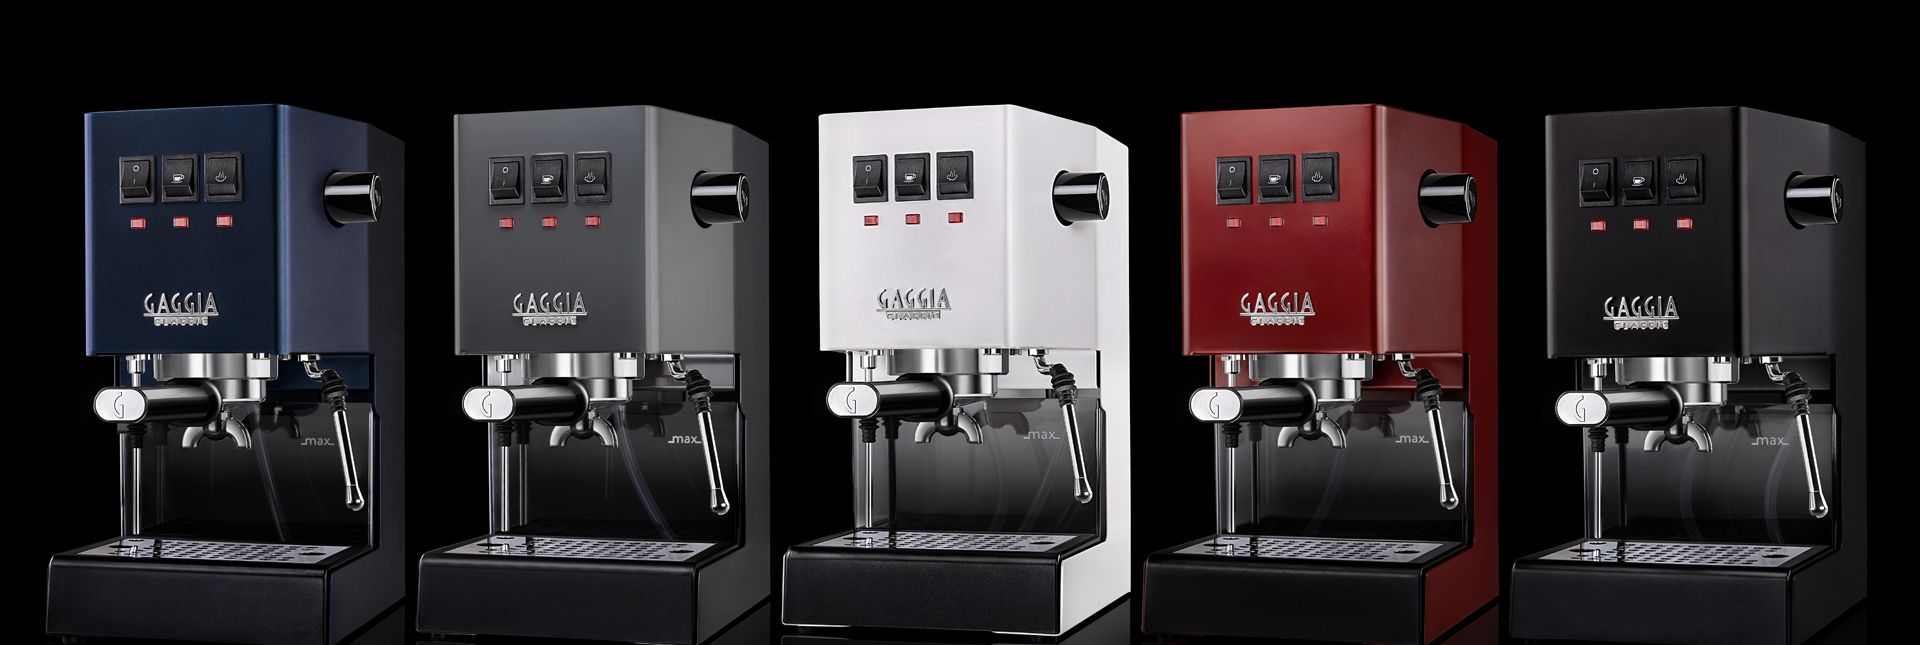 coming soon - Gaggia Classic Colors